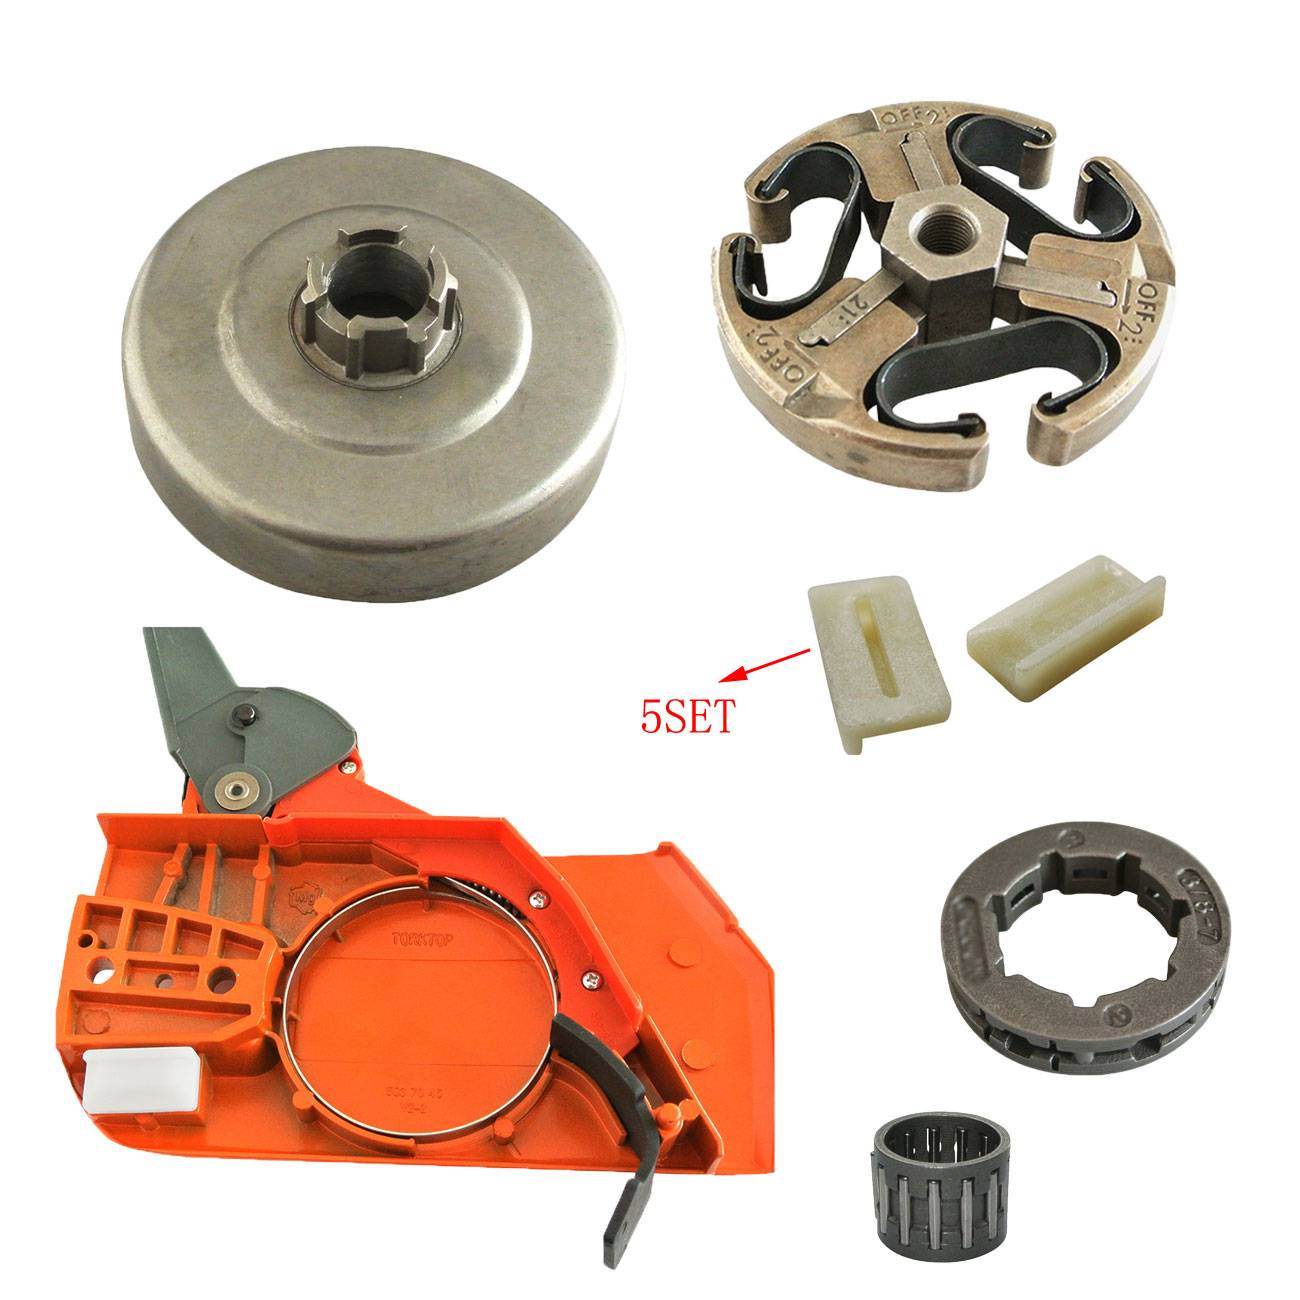 Chain Brake Handle Sprocket Clutch Drum For HUSQVARNA 61 66 162 266 268 272 chain brake cover handle clutch drum bell for husqvarna 61 268 272 xp 272xp 266 66 chainsaw